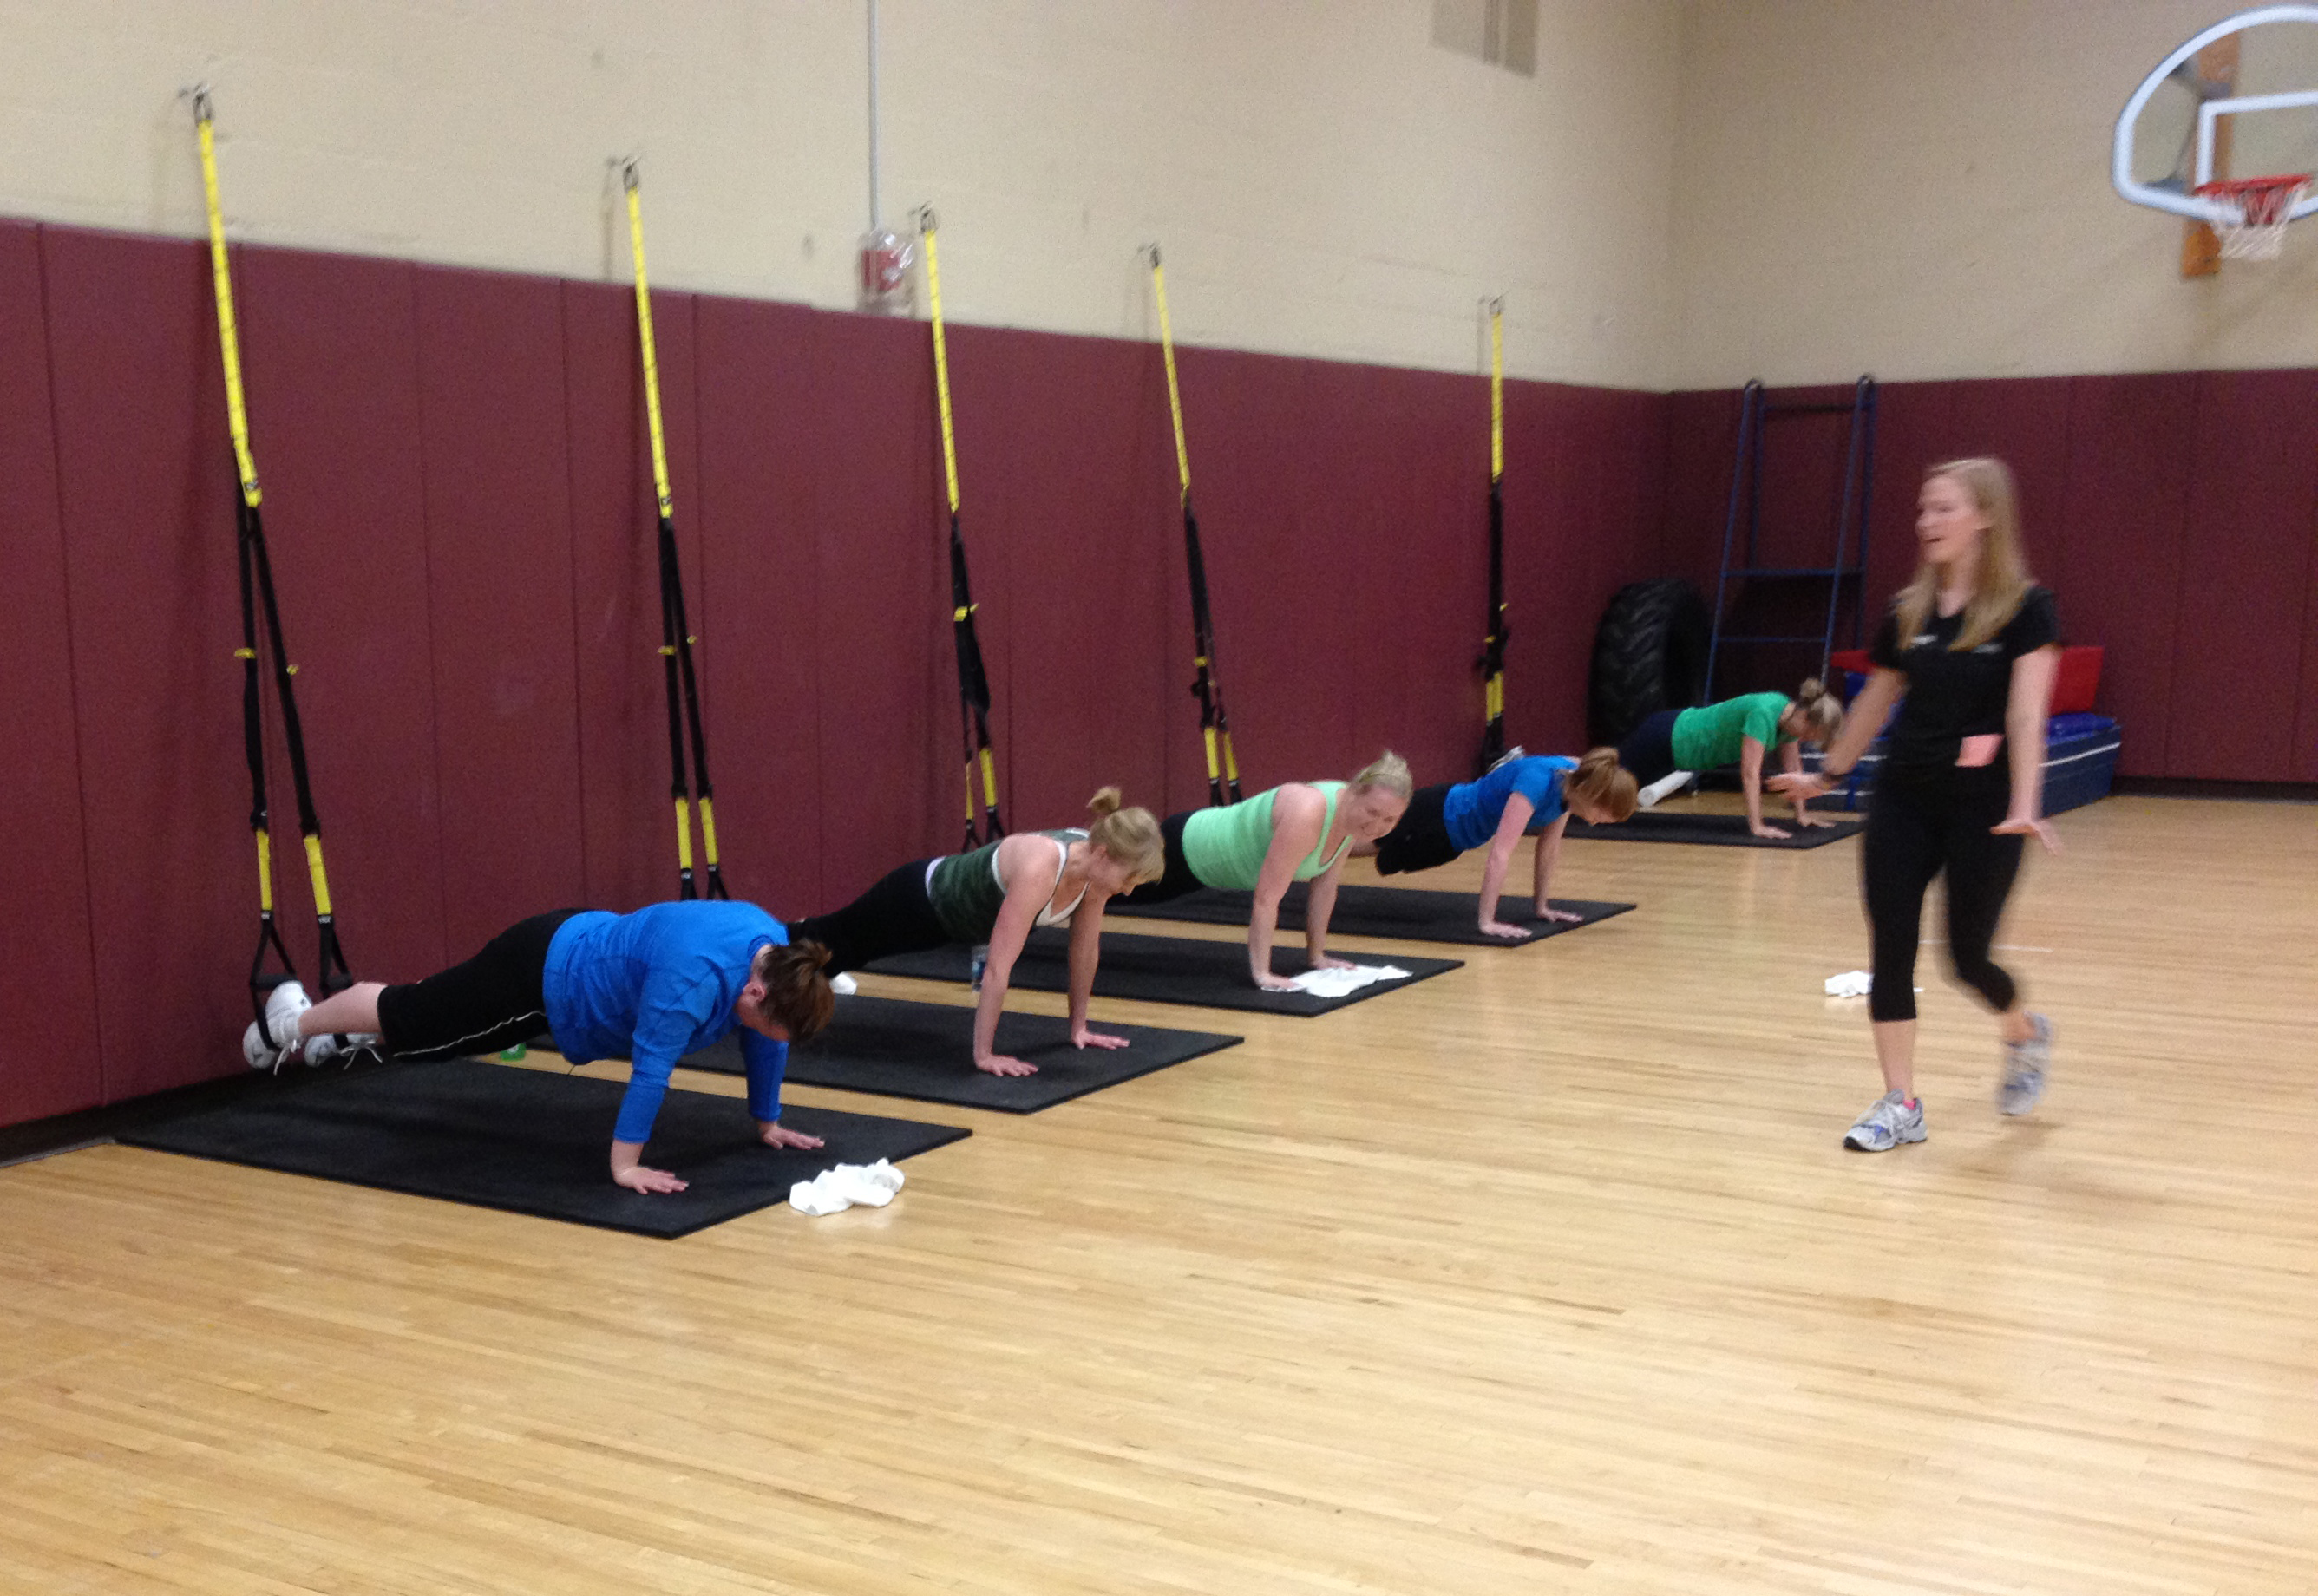 TRX Demo at Lifetime Fittness